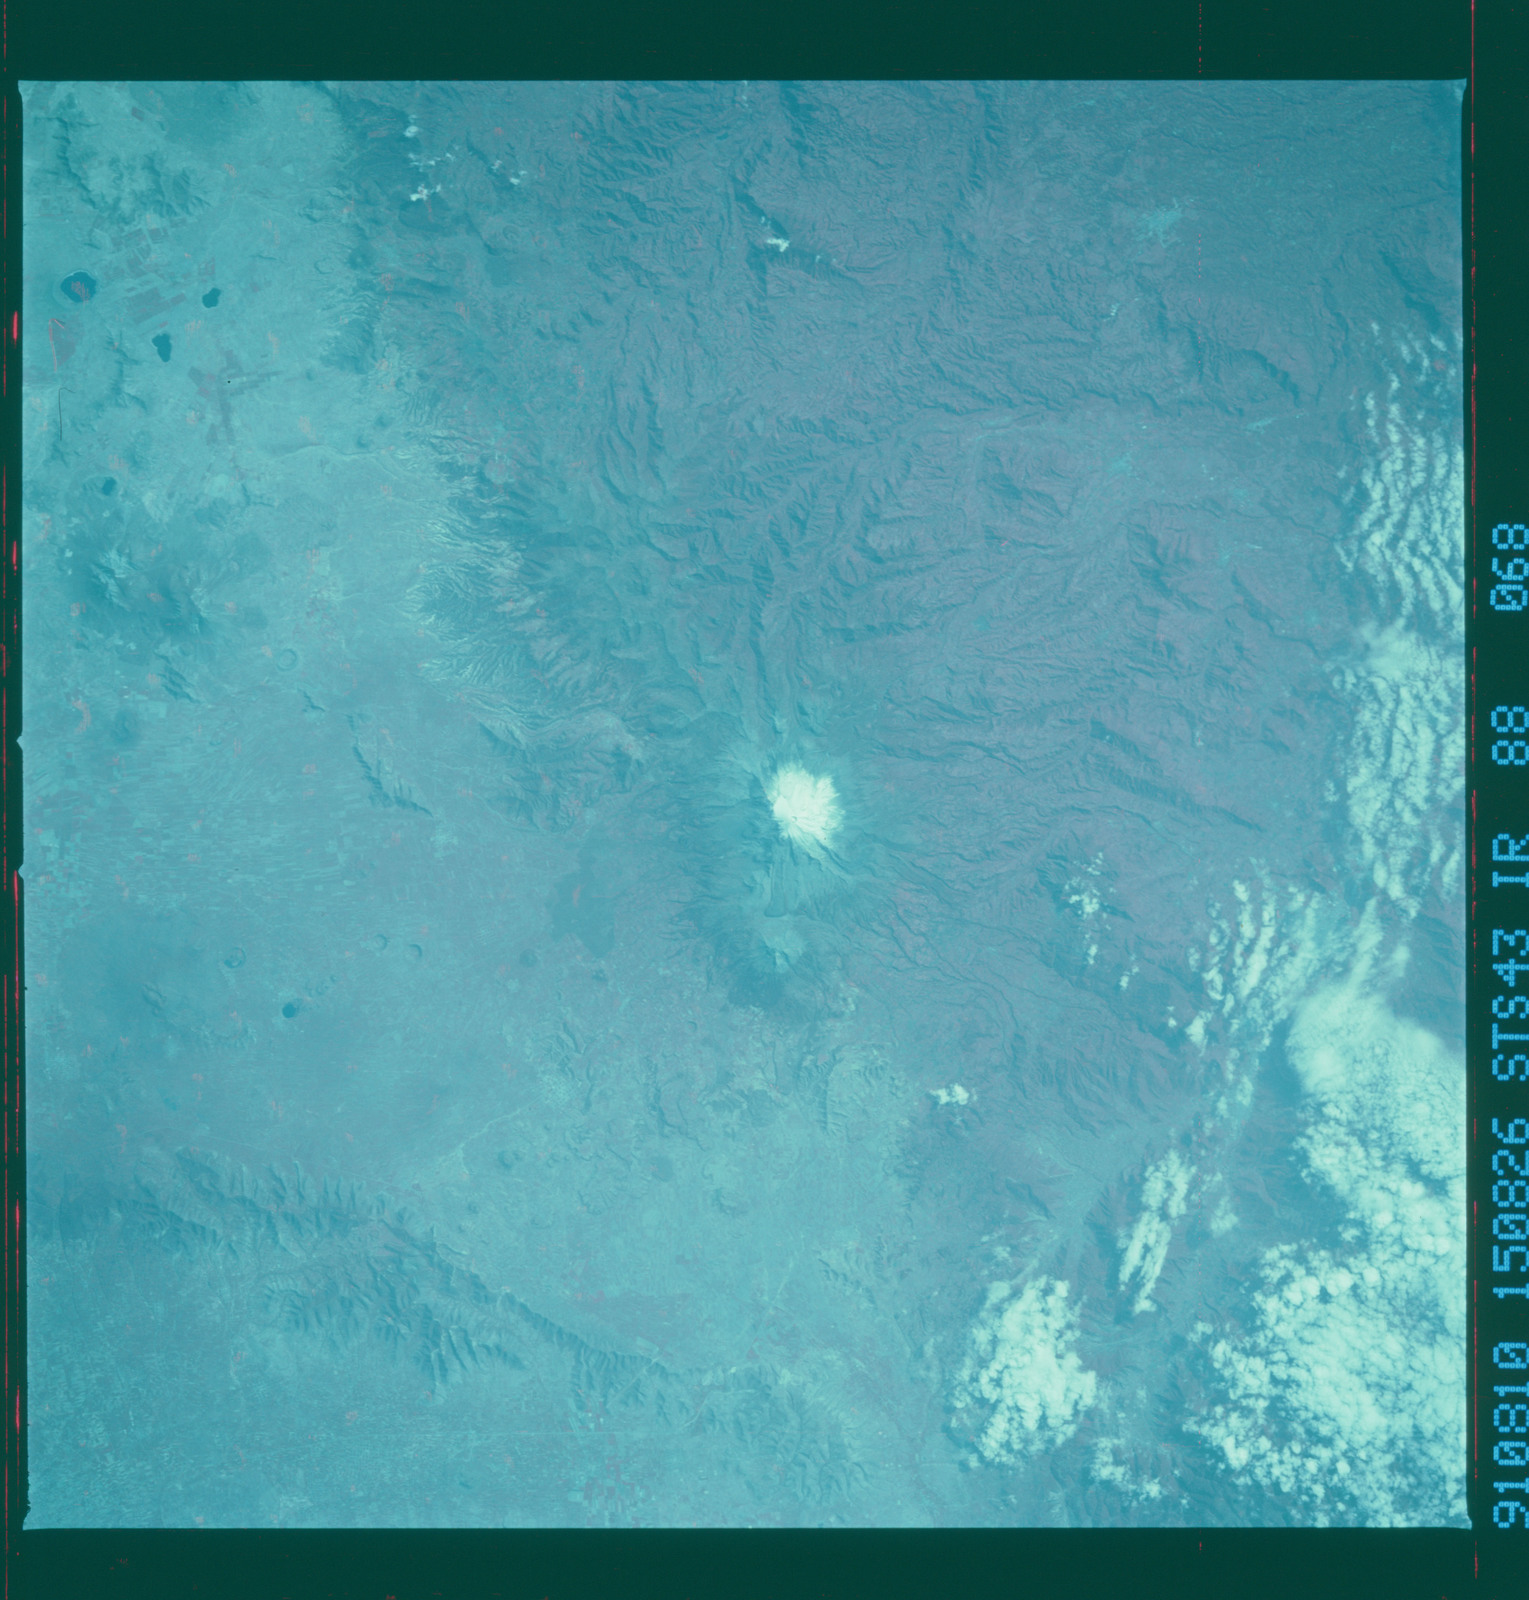 S43-88-068 - STS-043 - STS-43 earth observations